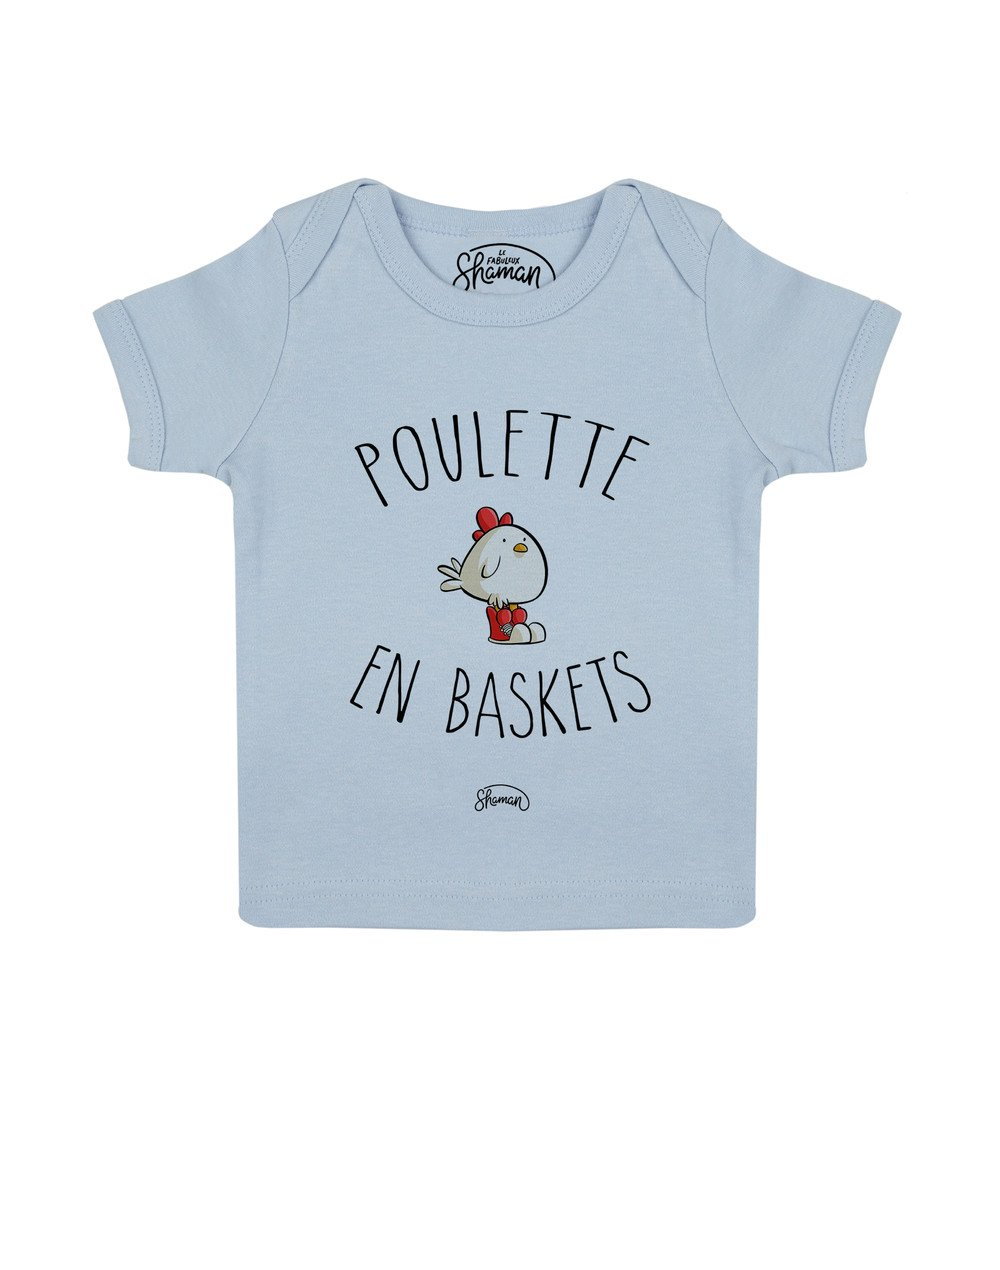 Tee shirt Poulette en baskets